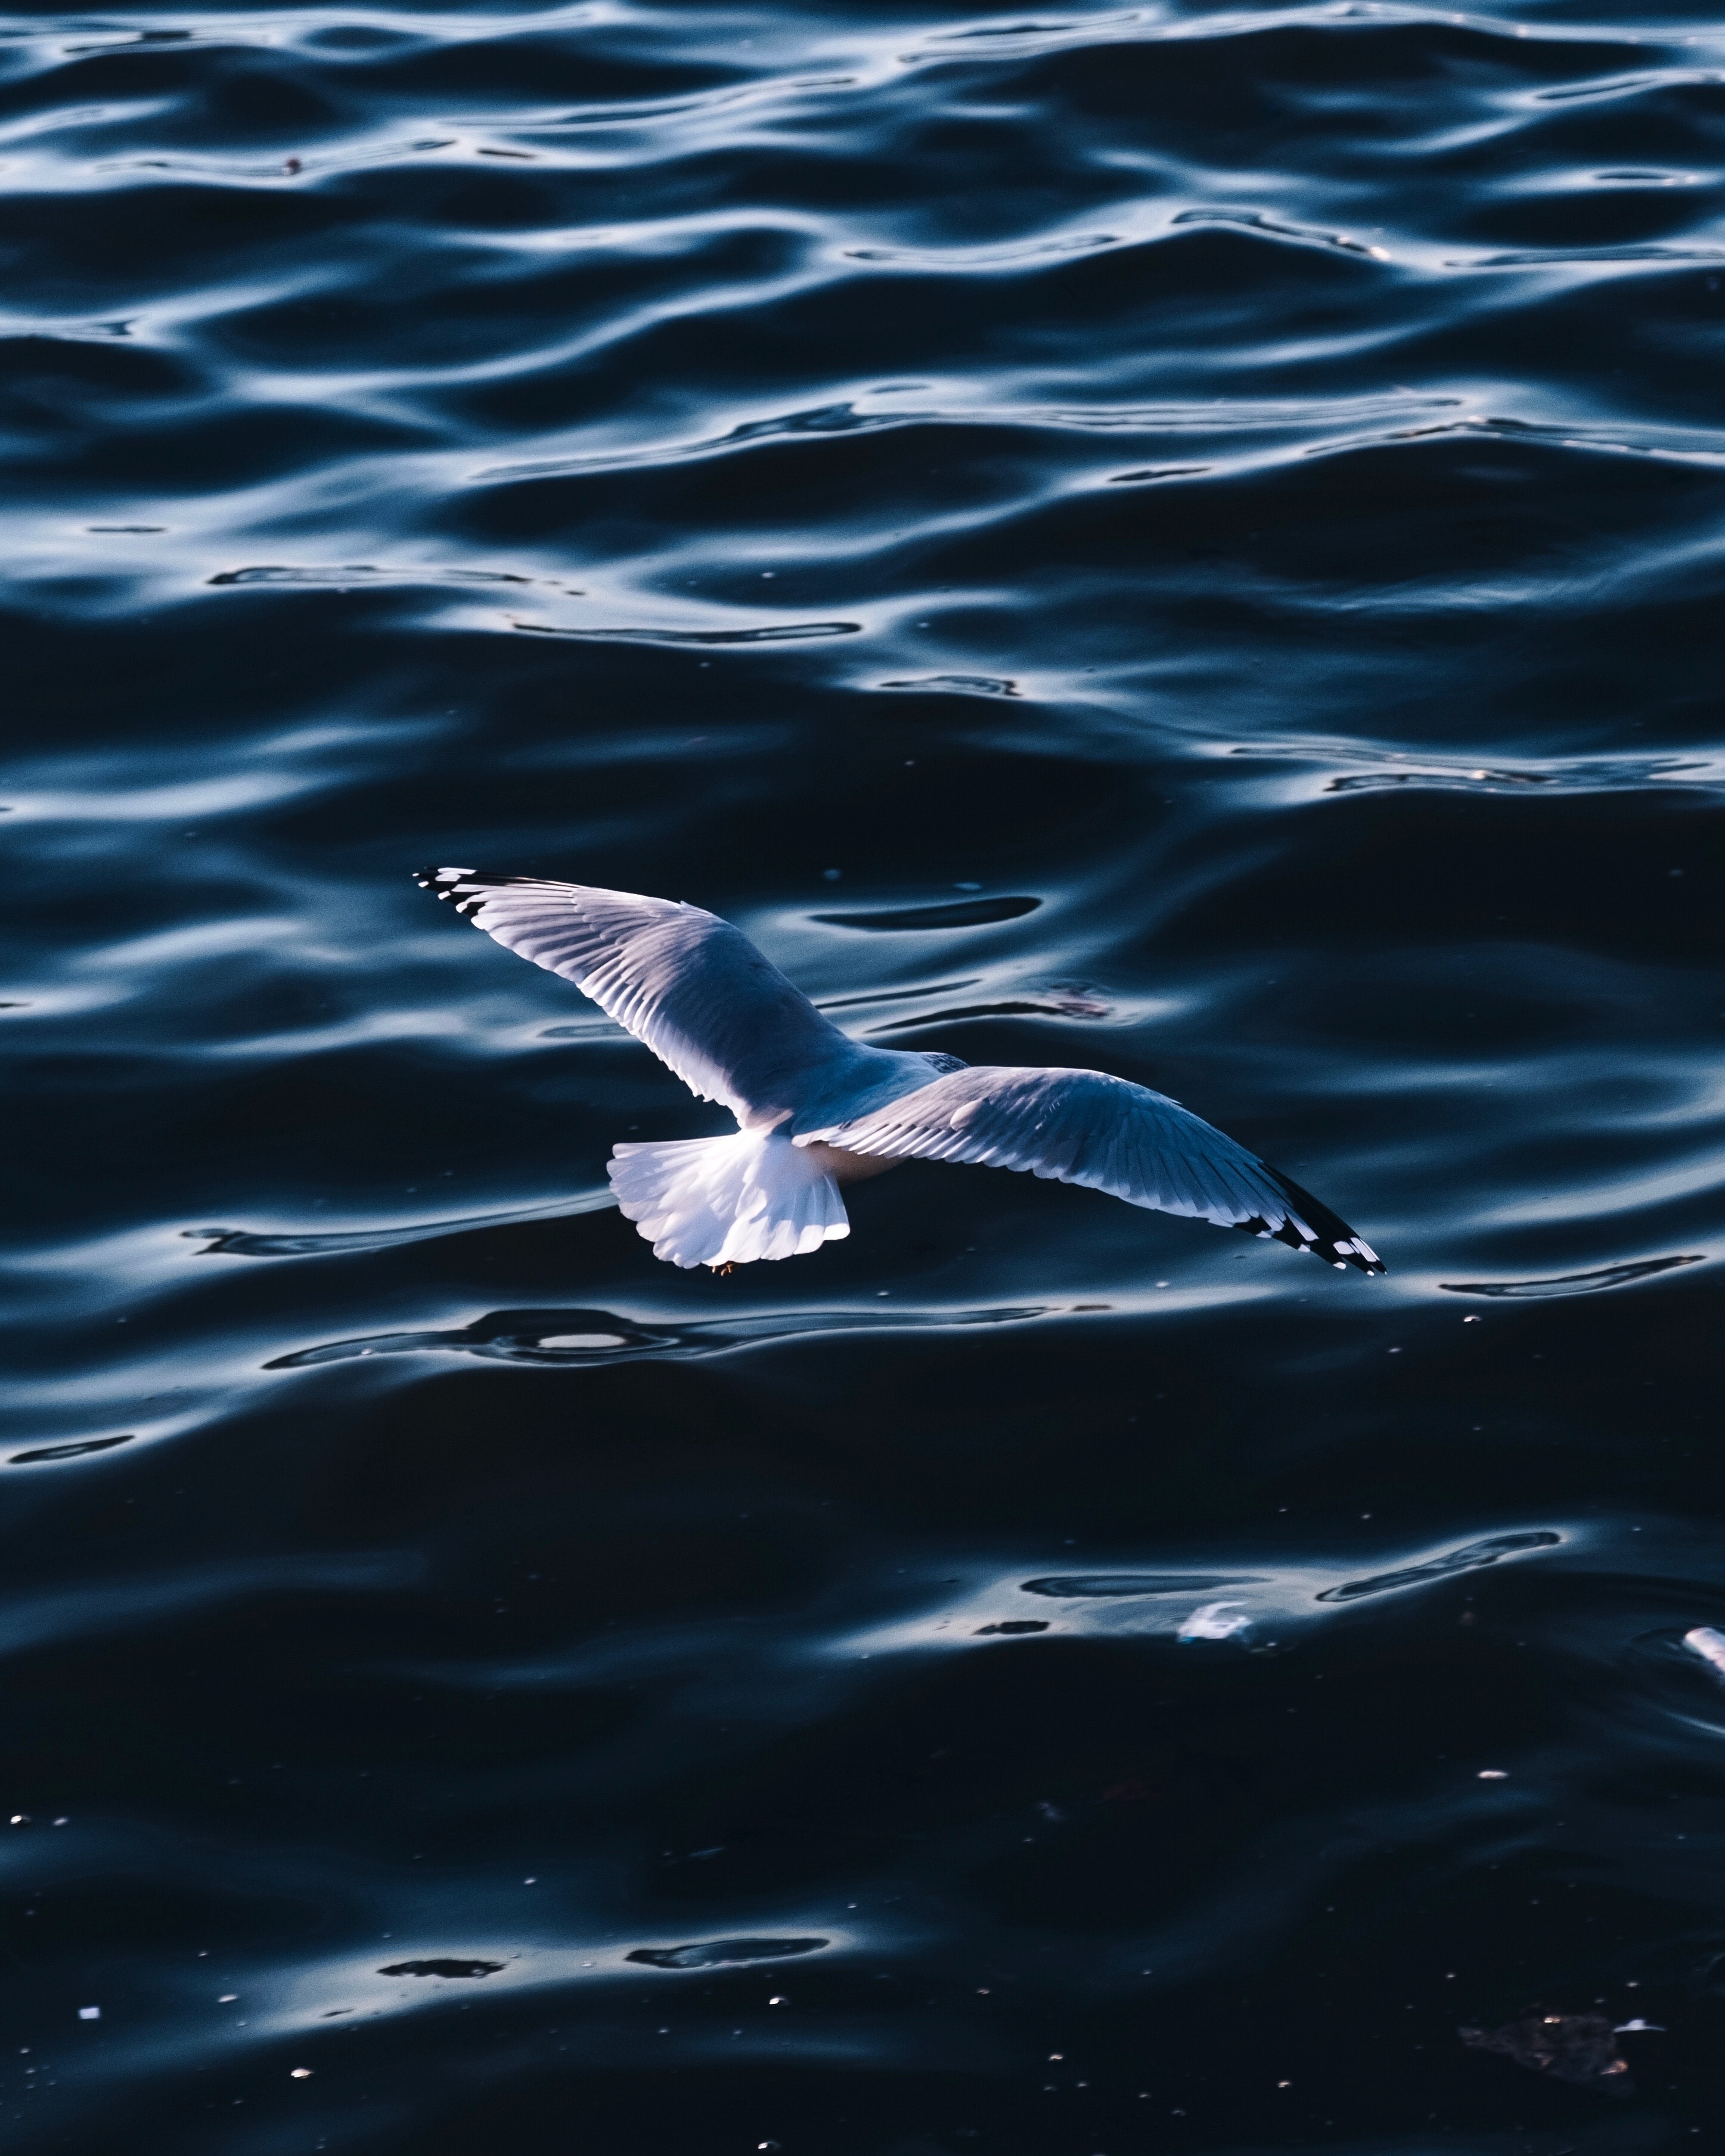 white seagull over body of water during daytime